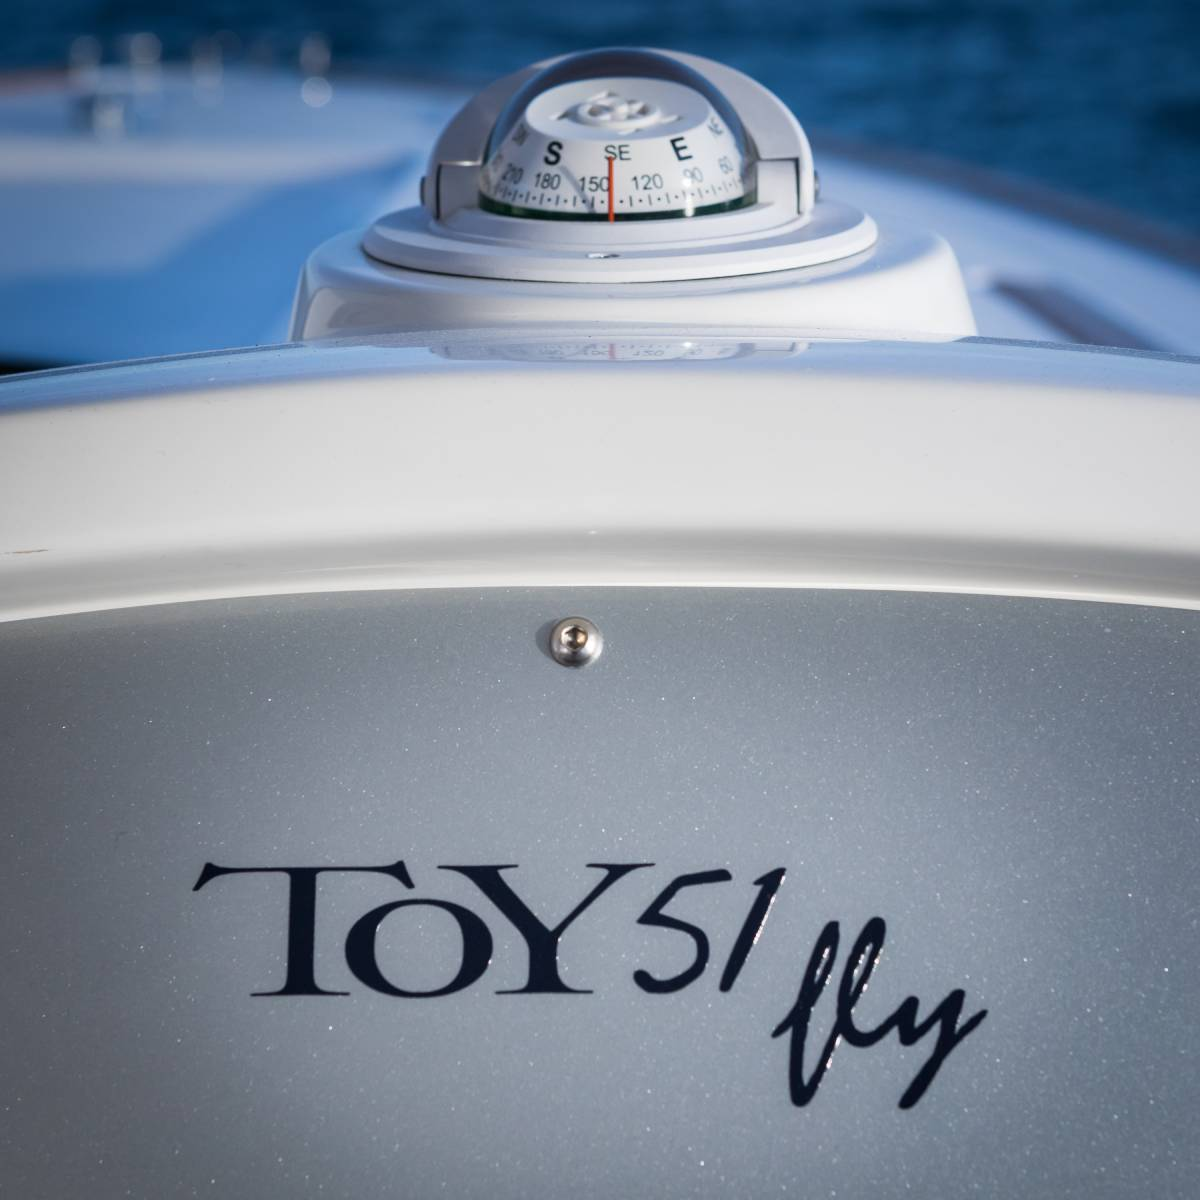 toy 51 fly compass